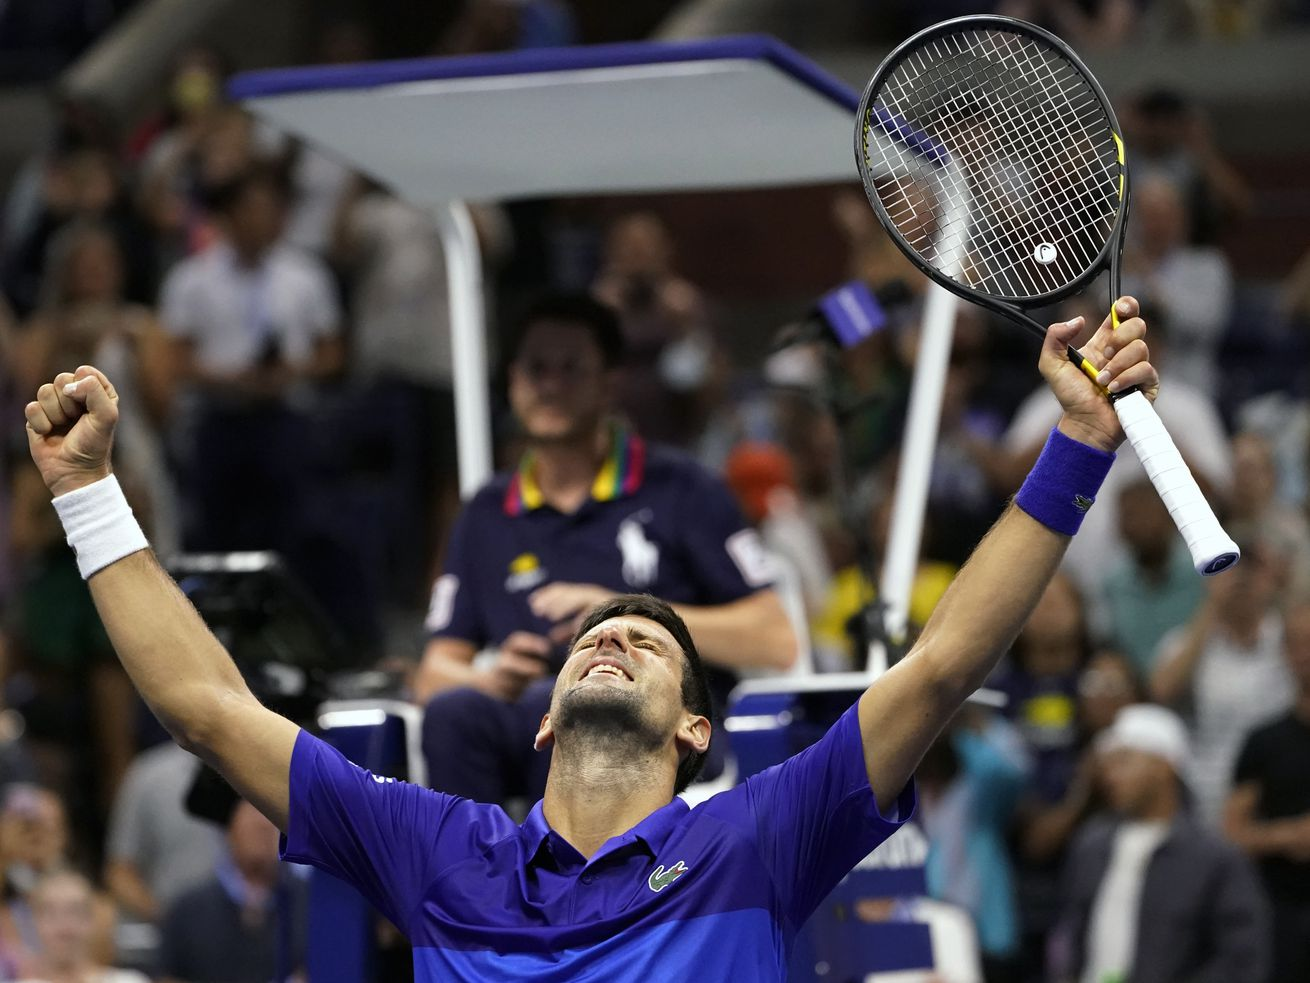 Novak Djokovic, of Serbia, reacts after beating Jenson Brooksby, of the United States, during the fourth round of the U.S. Open.